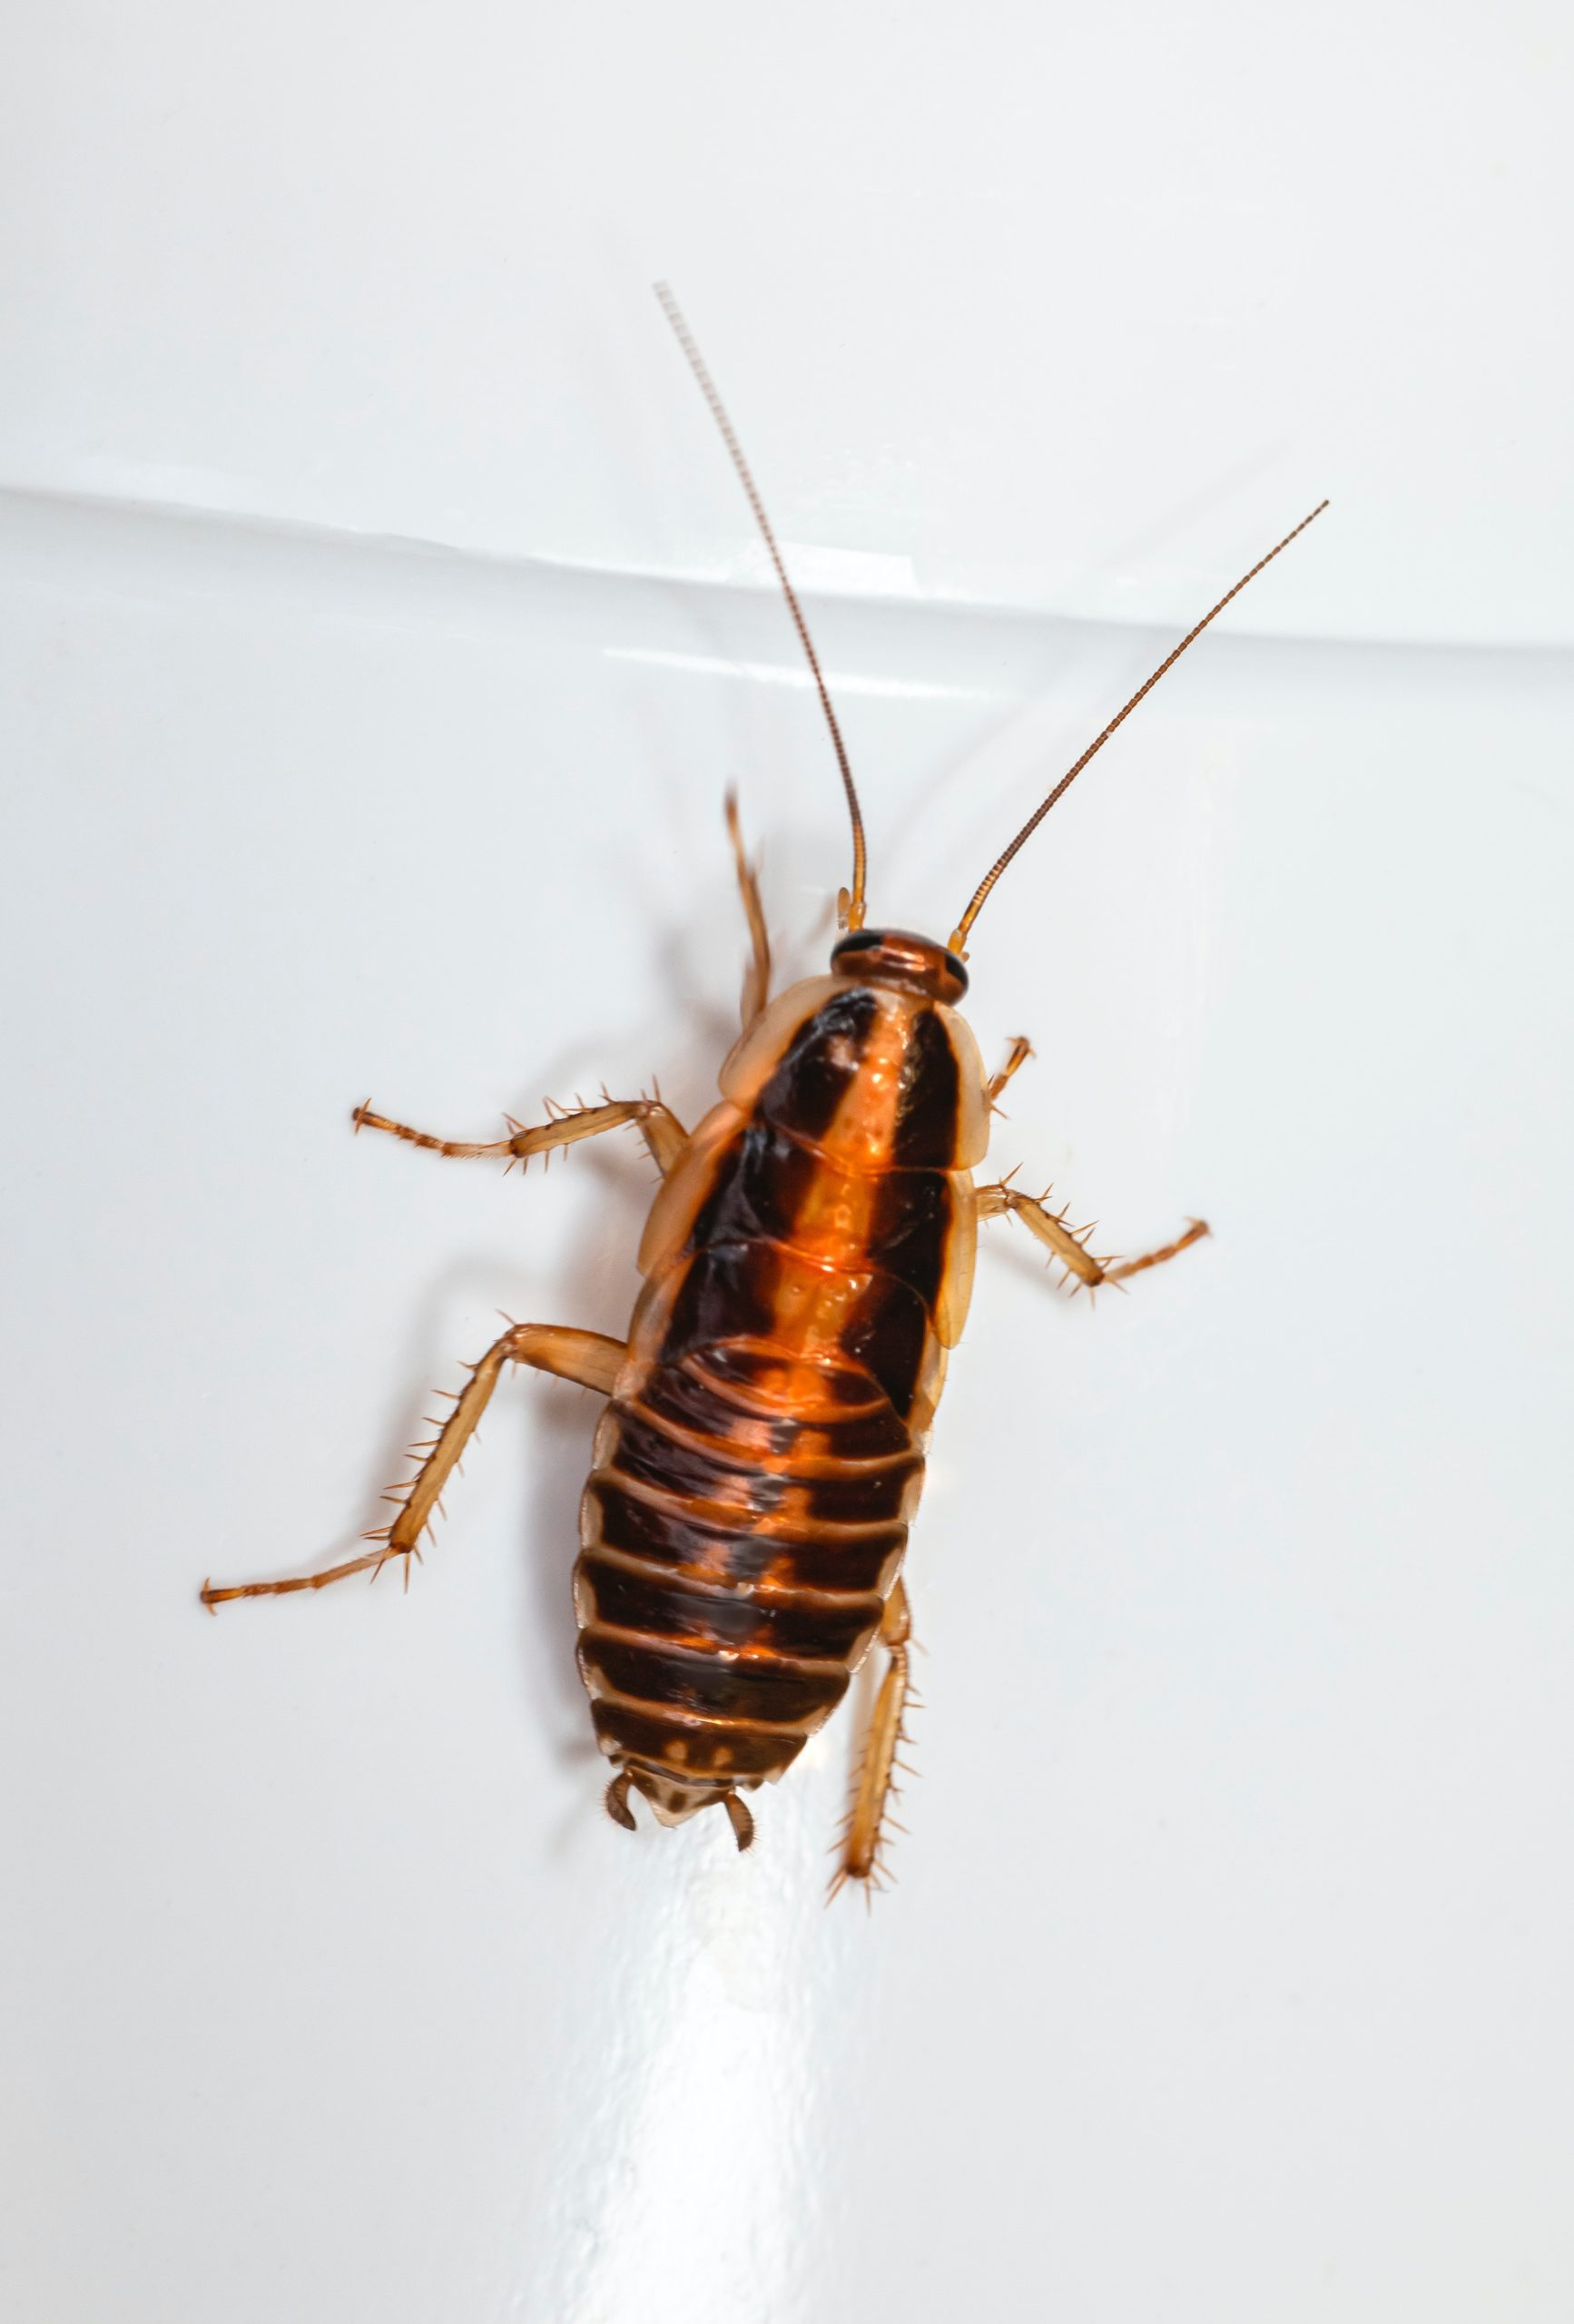 How to Keep Cockroaches Away?